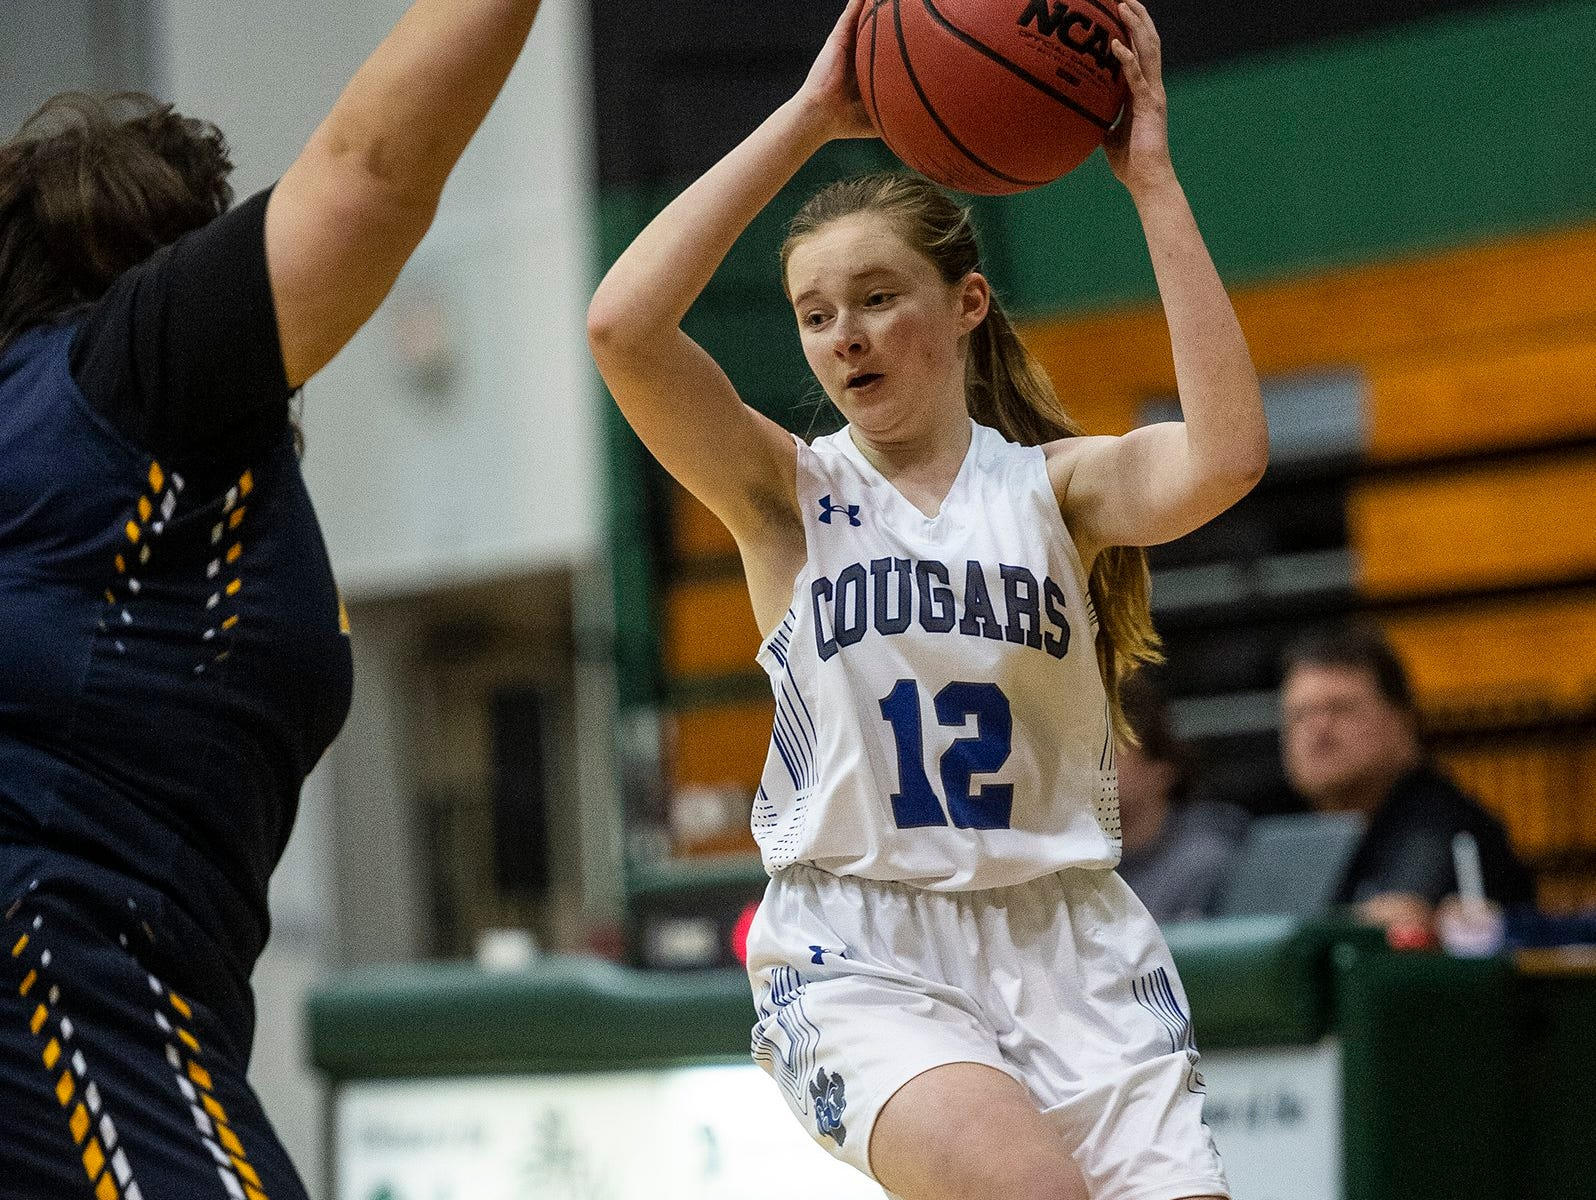 Barron Collier's Cierra Alderman looks to pass during the Class 7A-District 12 Championship against Naples High School in Naples, Fla., on Friday, Feb. 8, 2019.